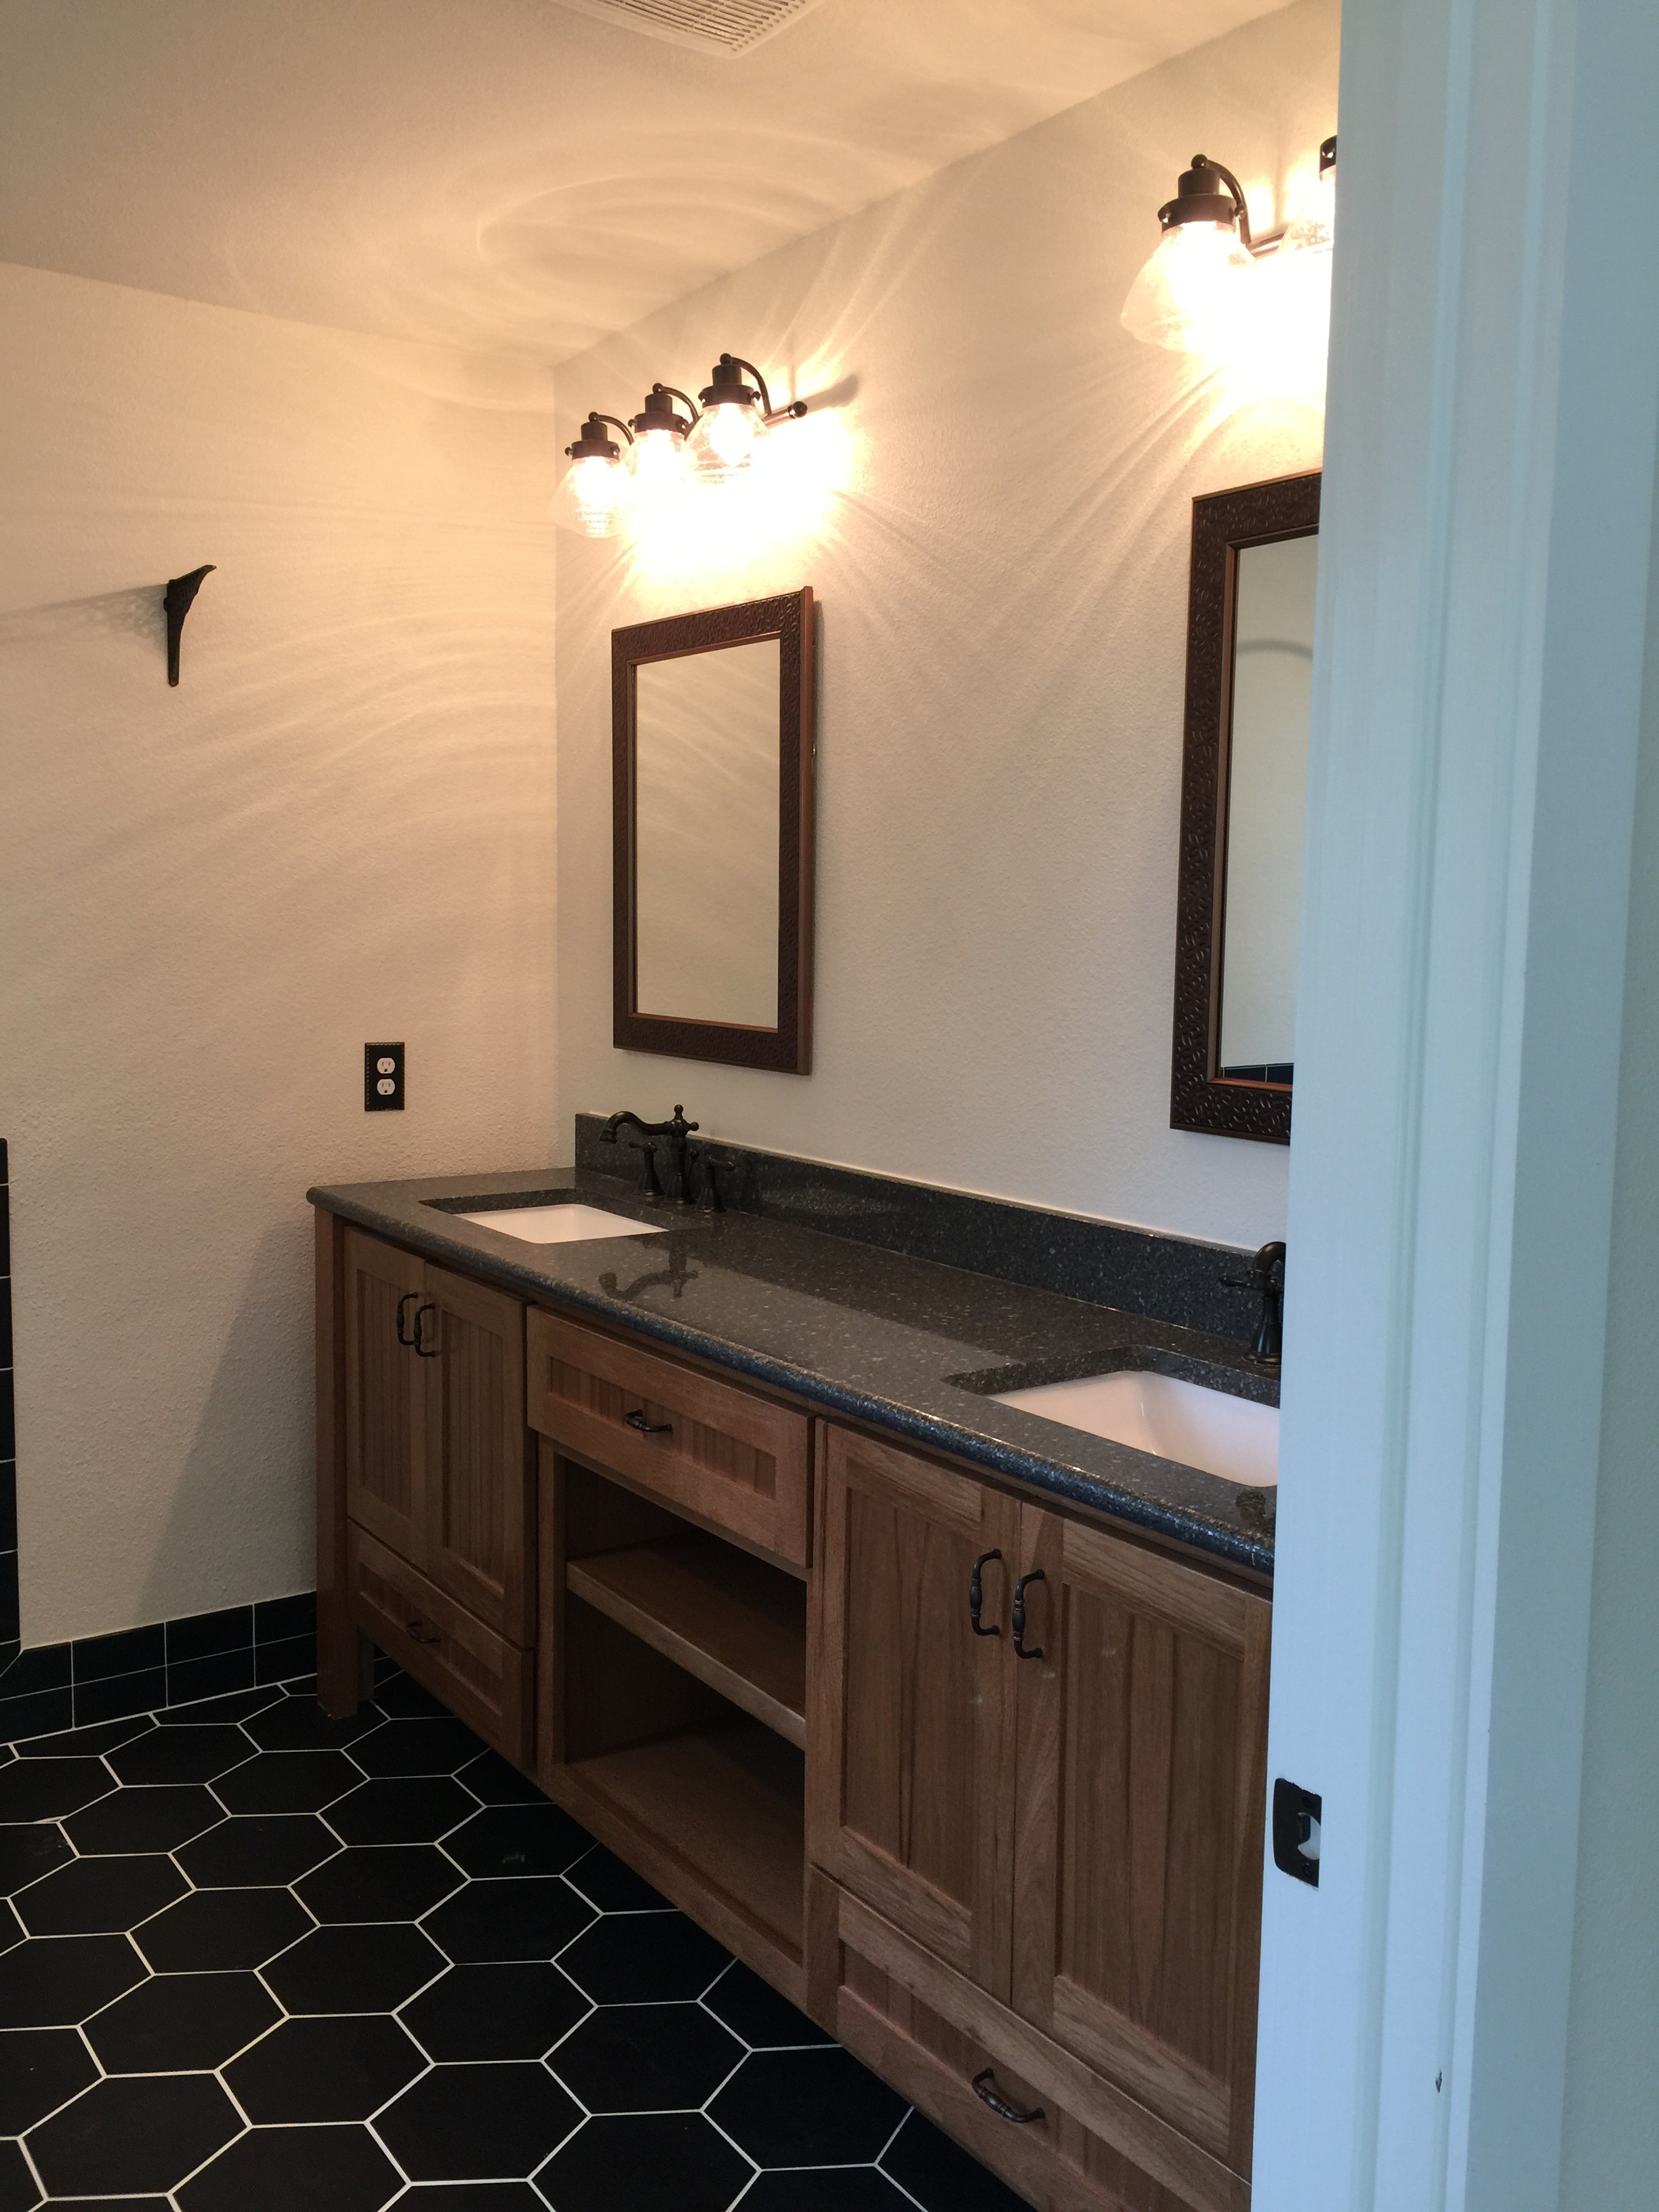 910 PLL - Finished Master Bath, mirrors and lights.JPG